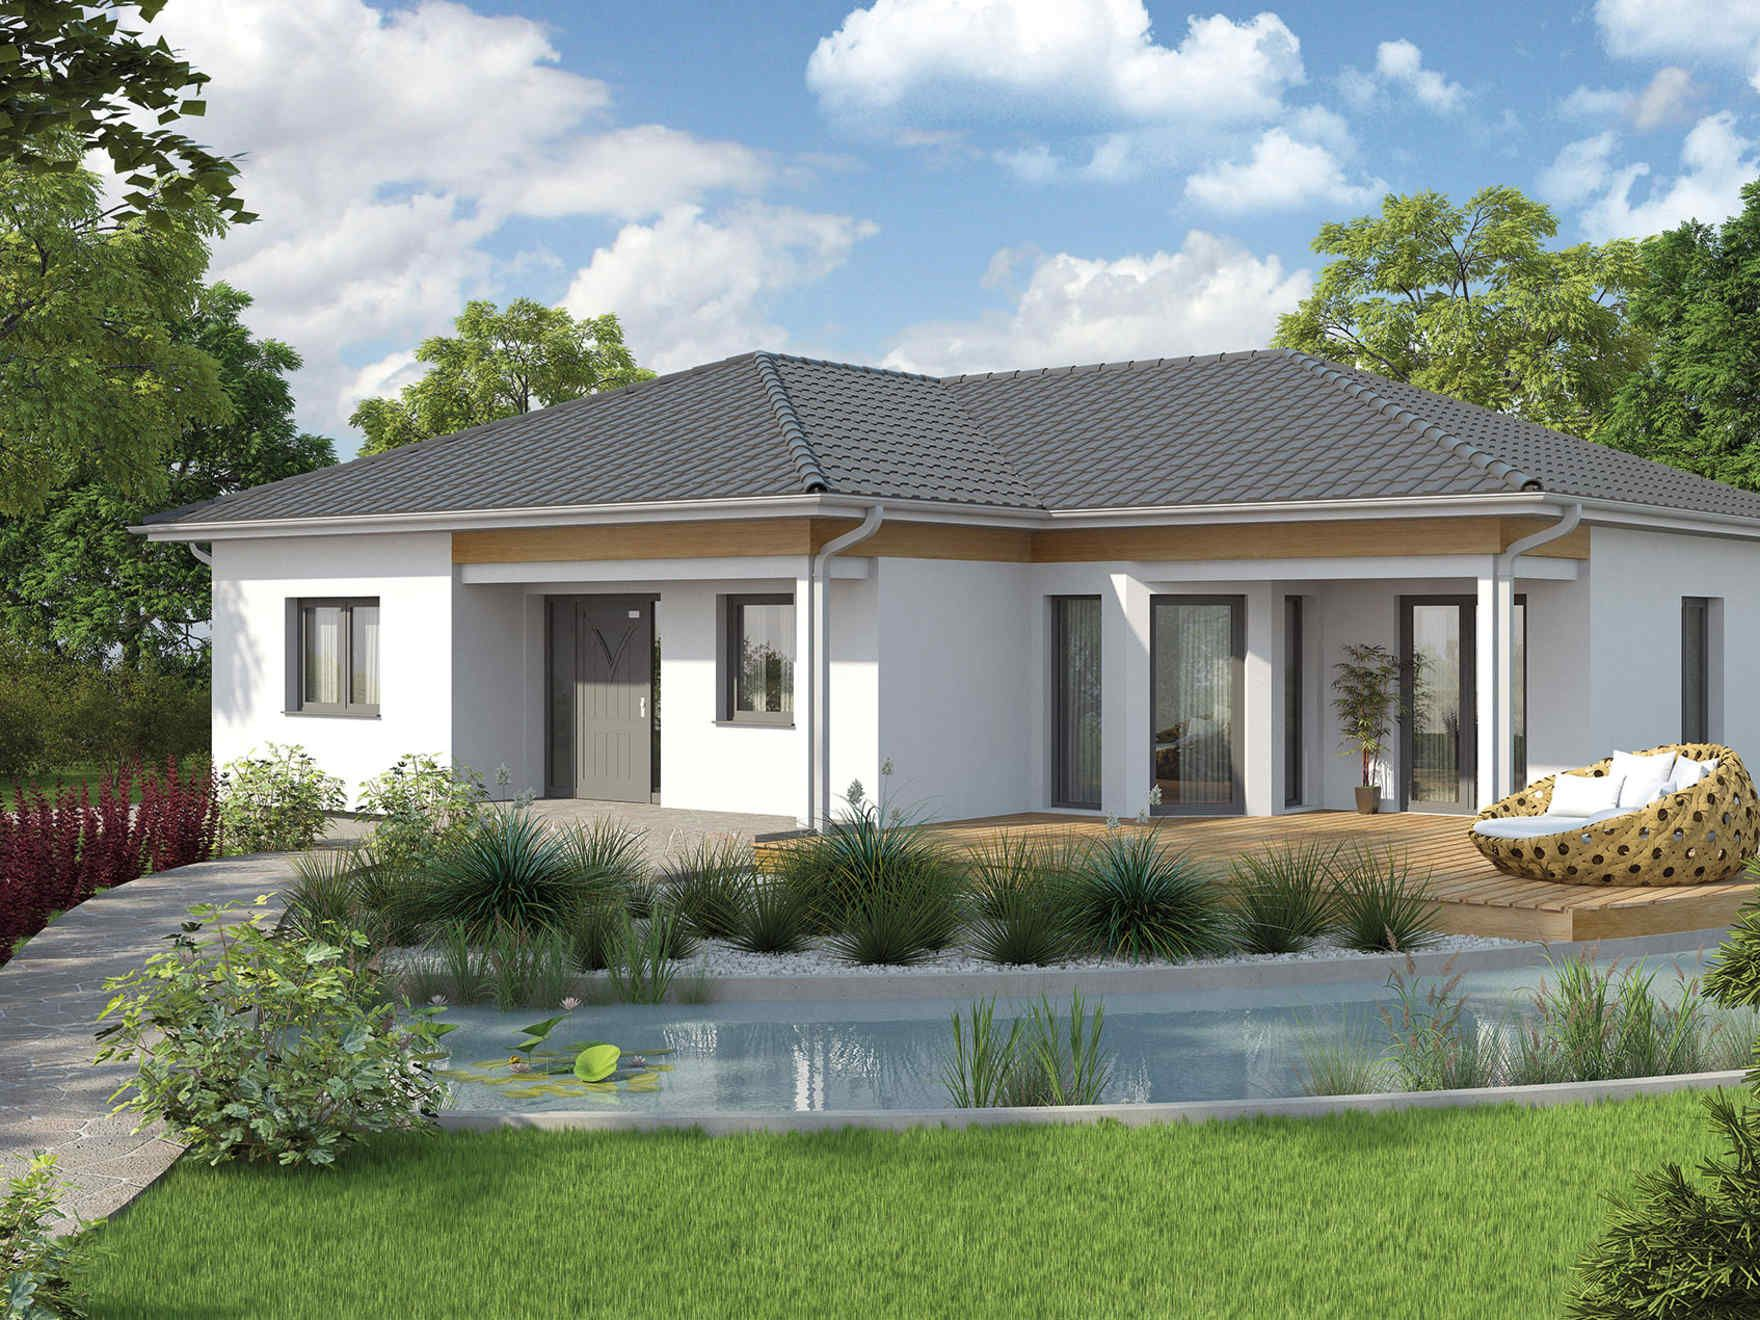 Vario haus bungalow we136 gibtdemlebeneinzuhause for Cottage haus bauen